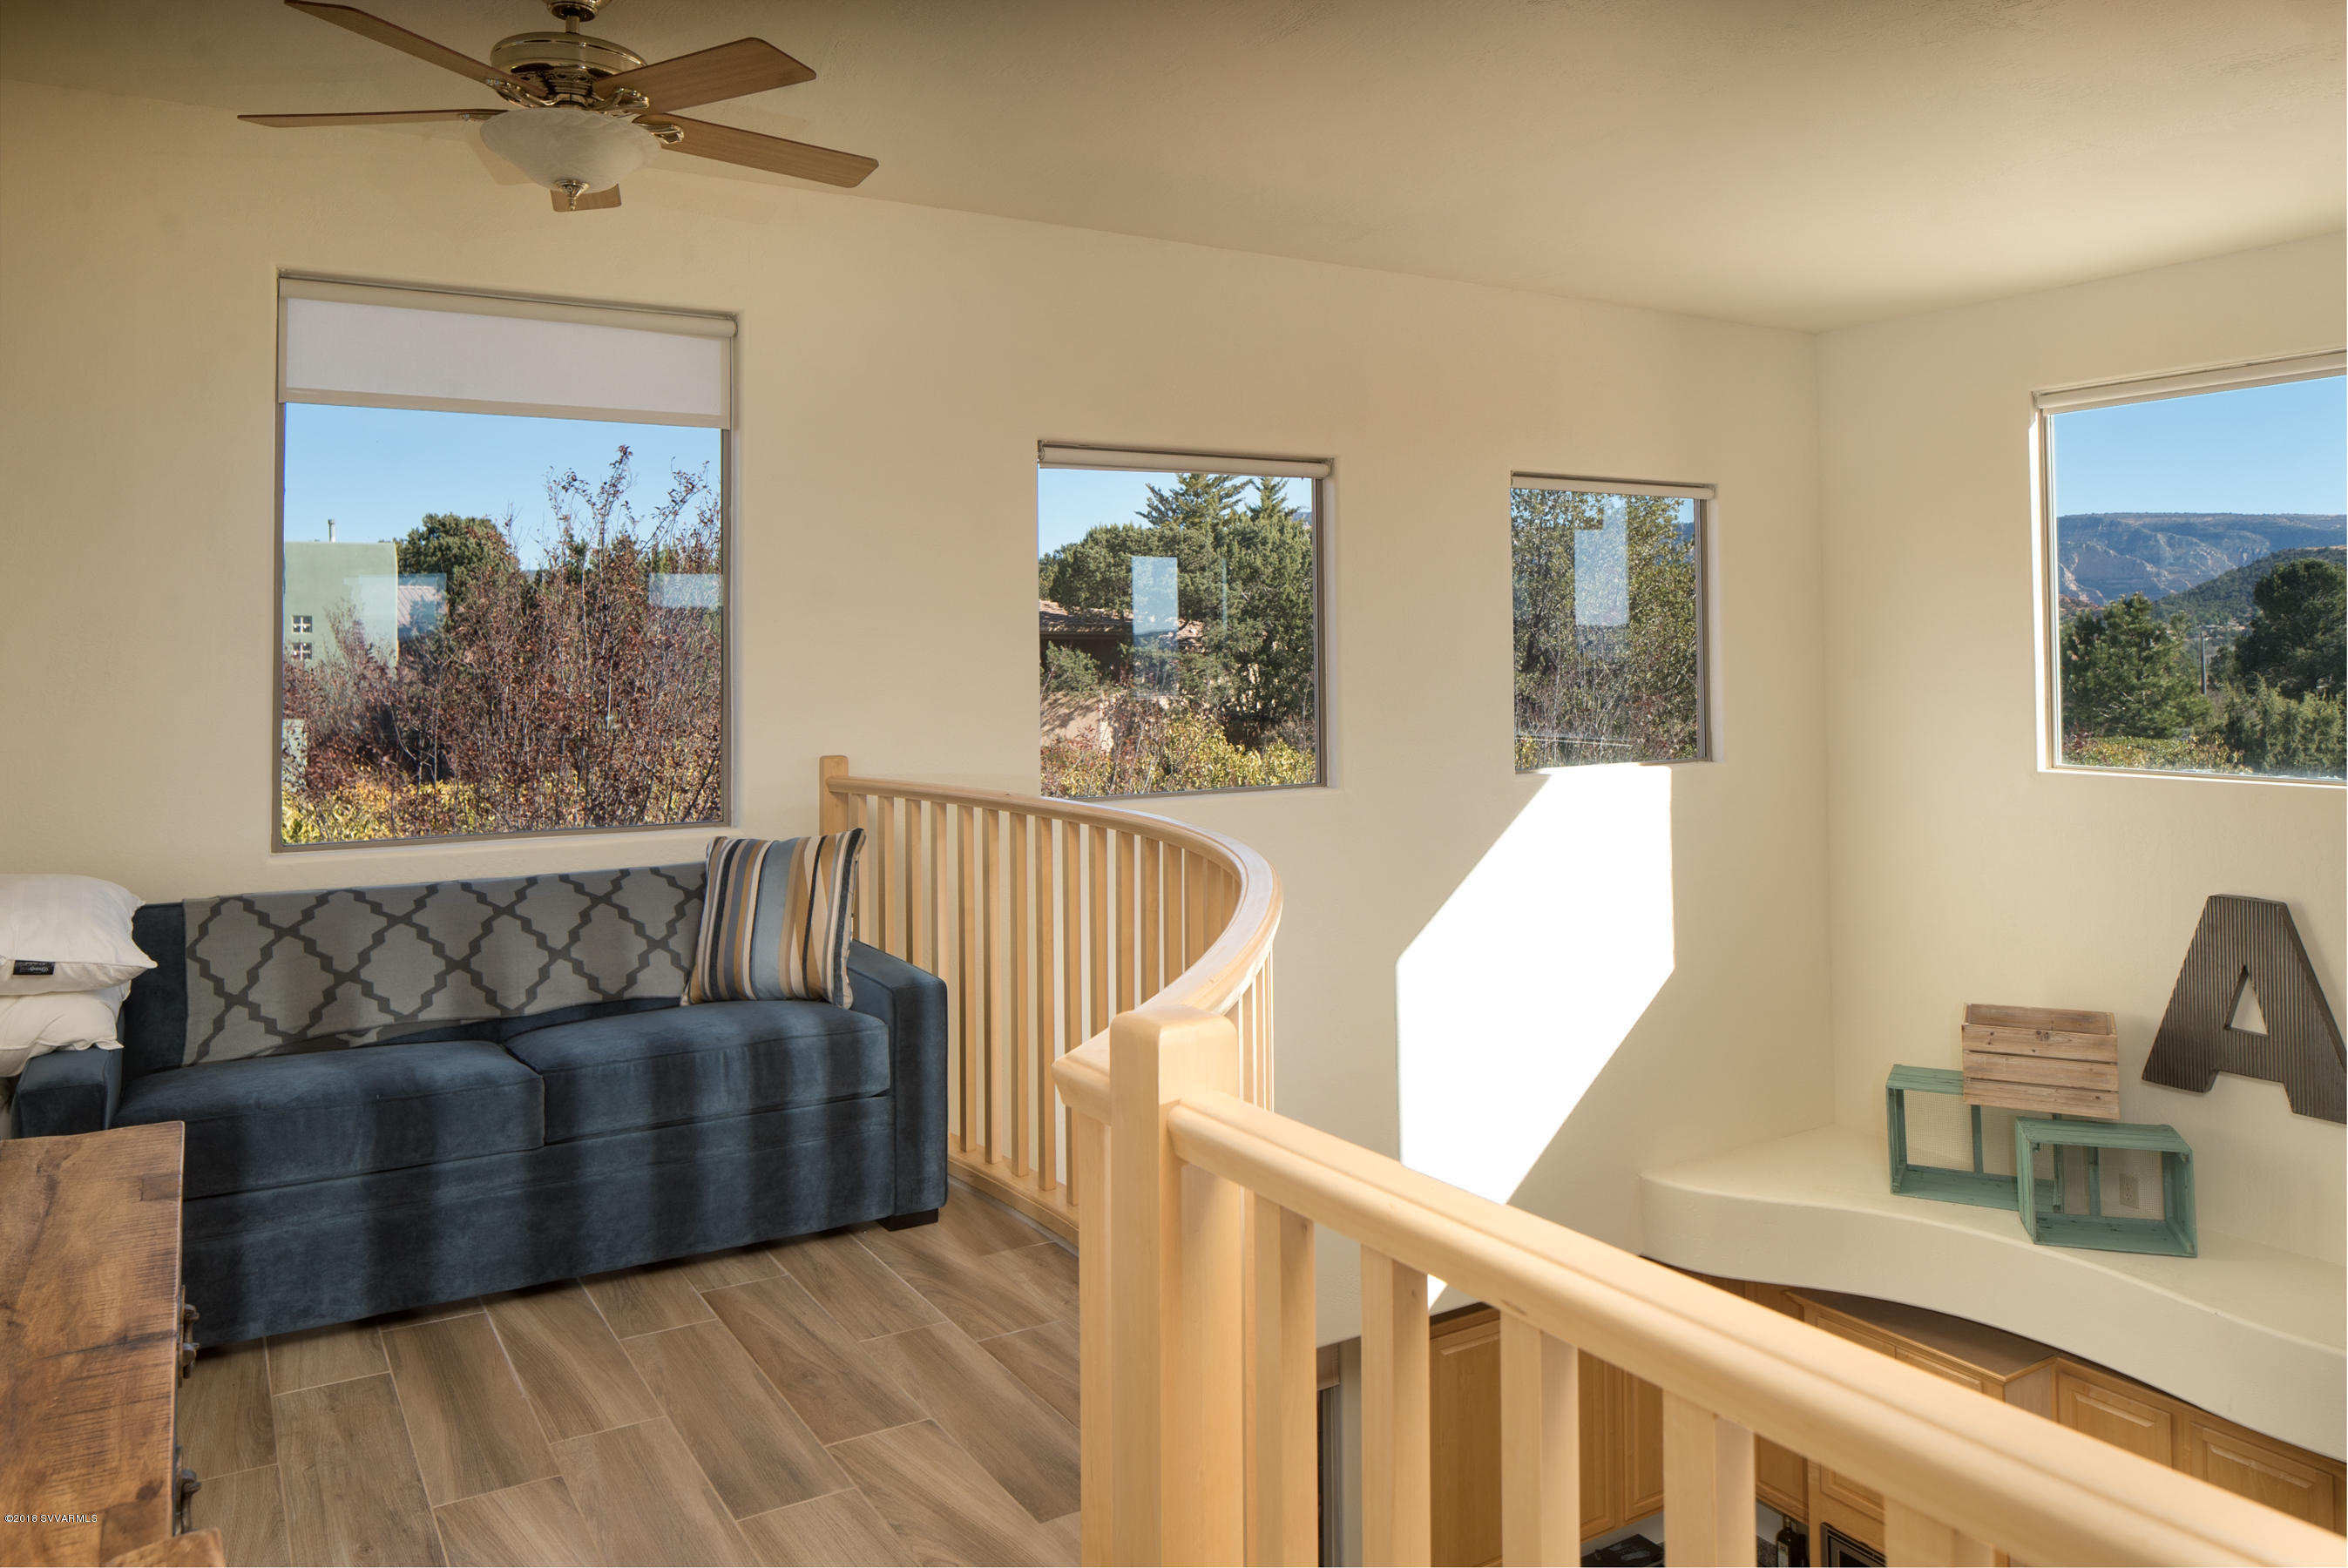 75 Whitetail Lane Sedona, AZ 86336